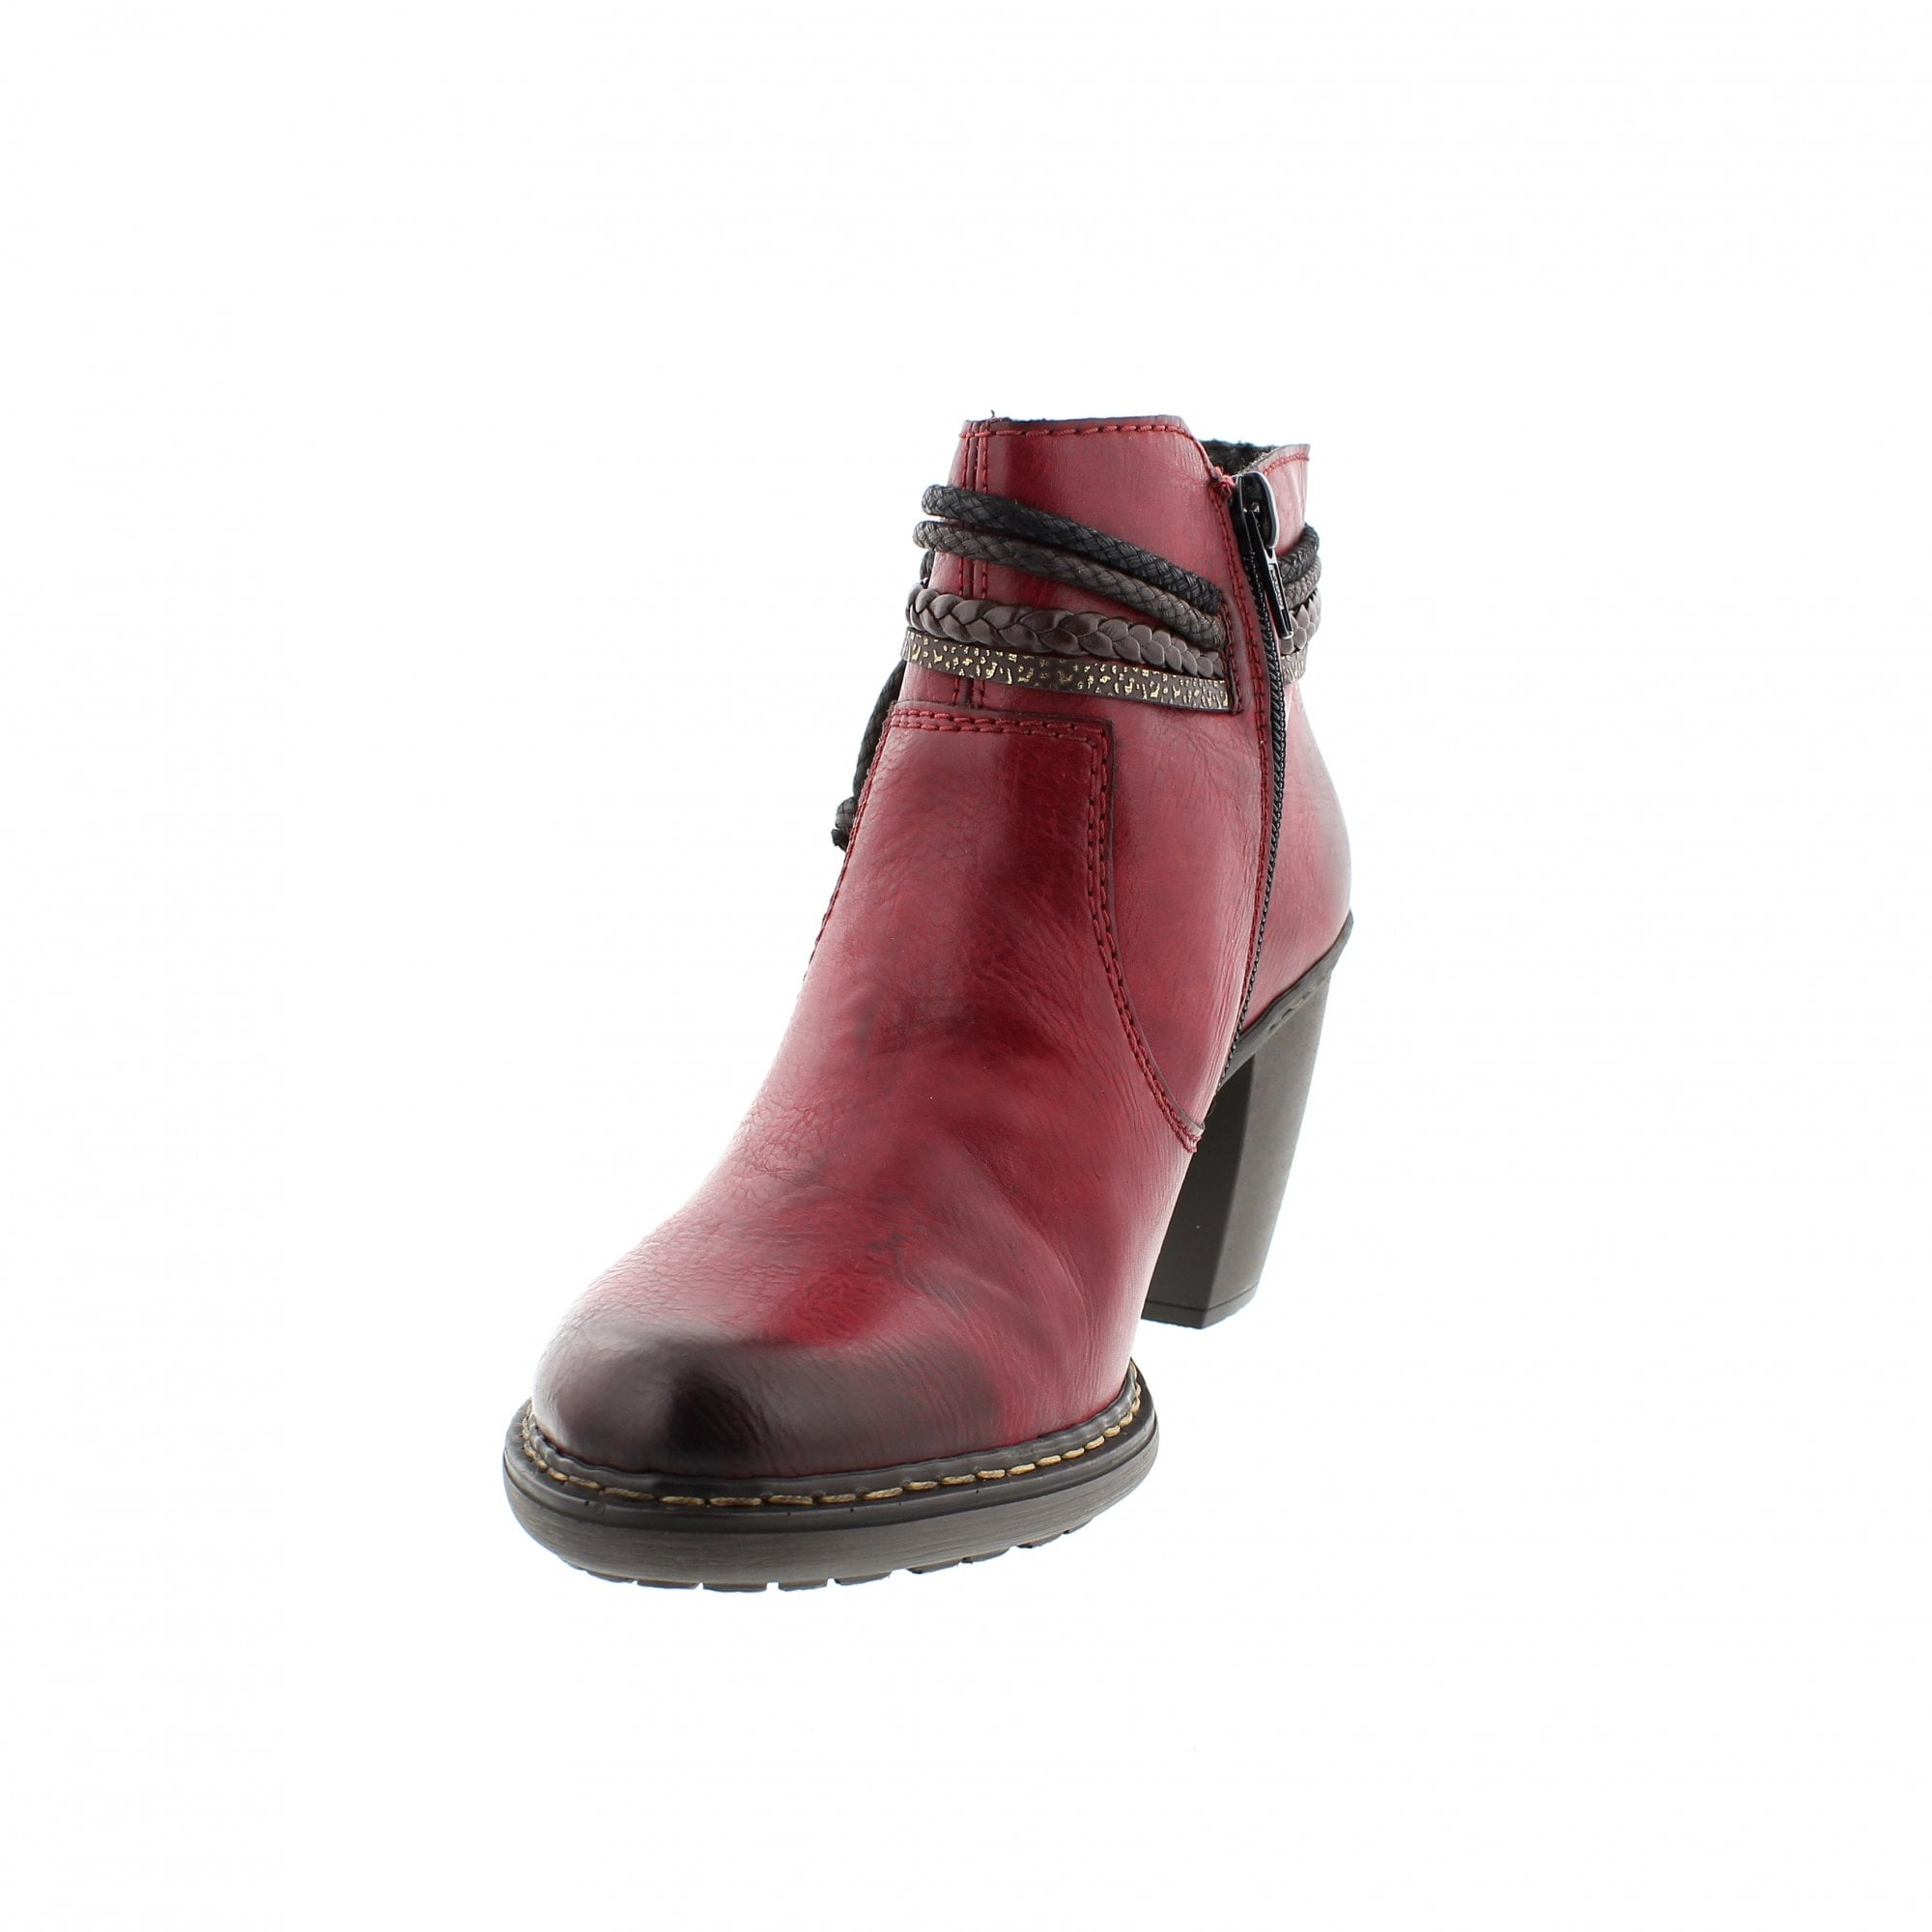 ca36908070f1 Rieker 55298-35 Burgundy Womens Ankle Boots